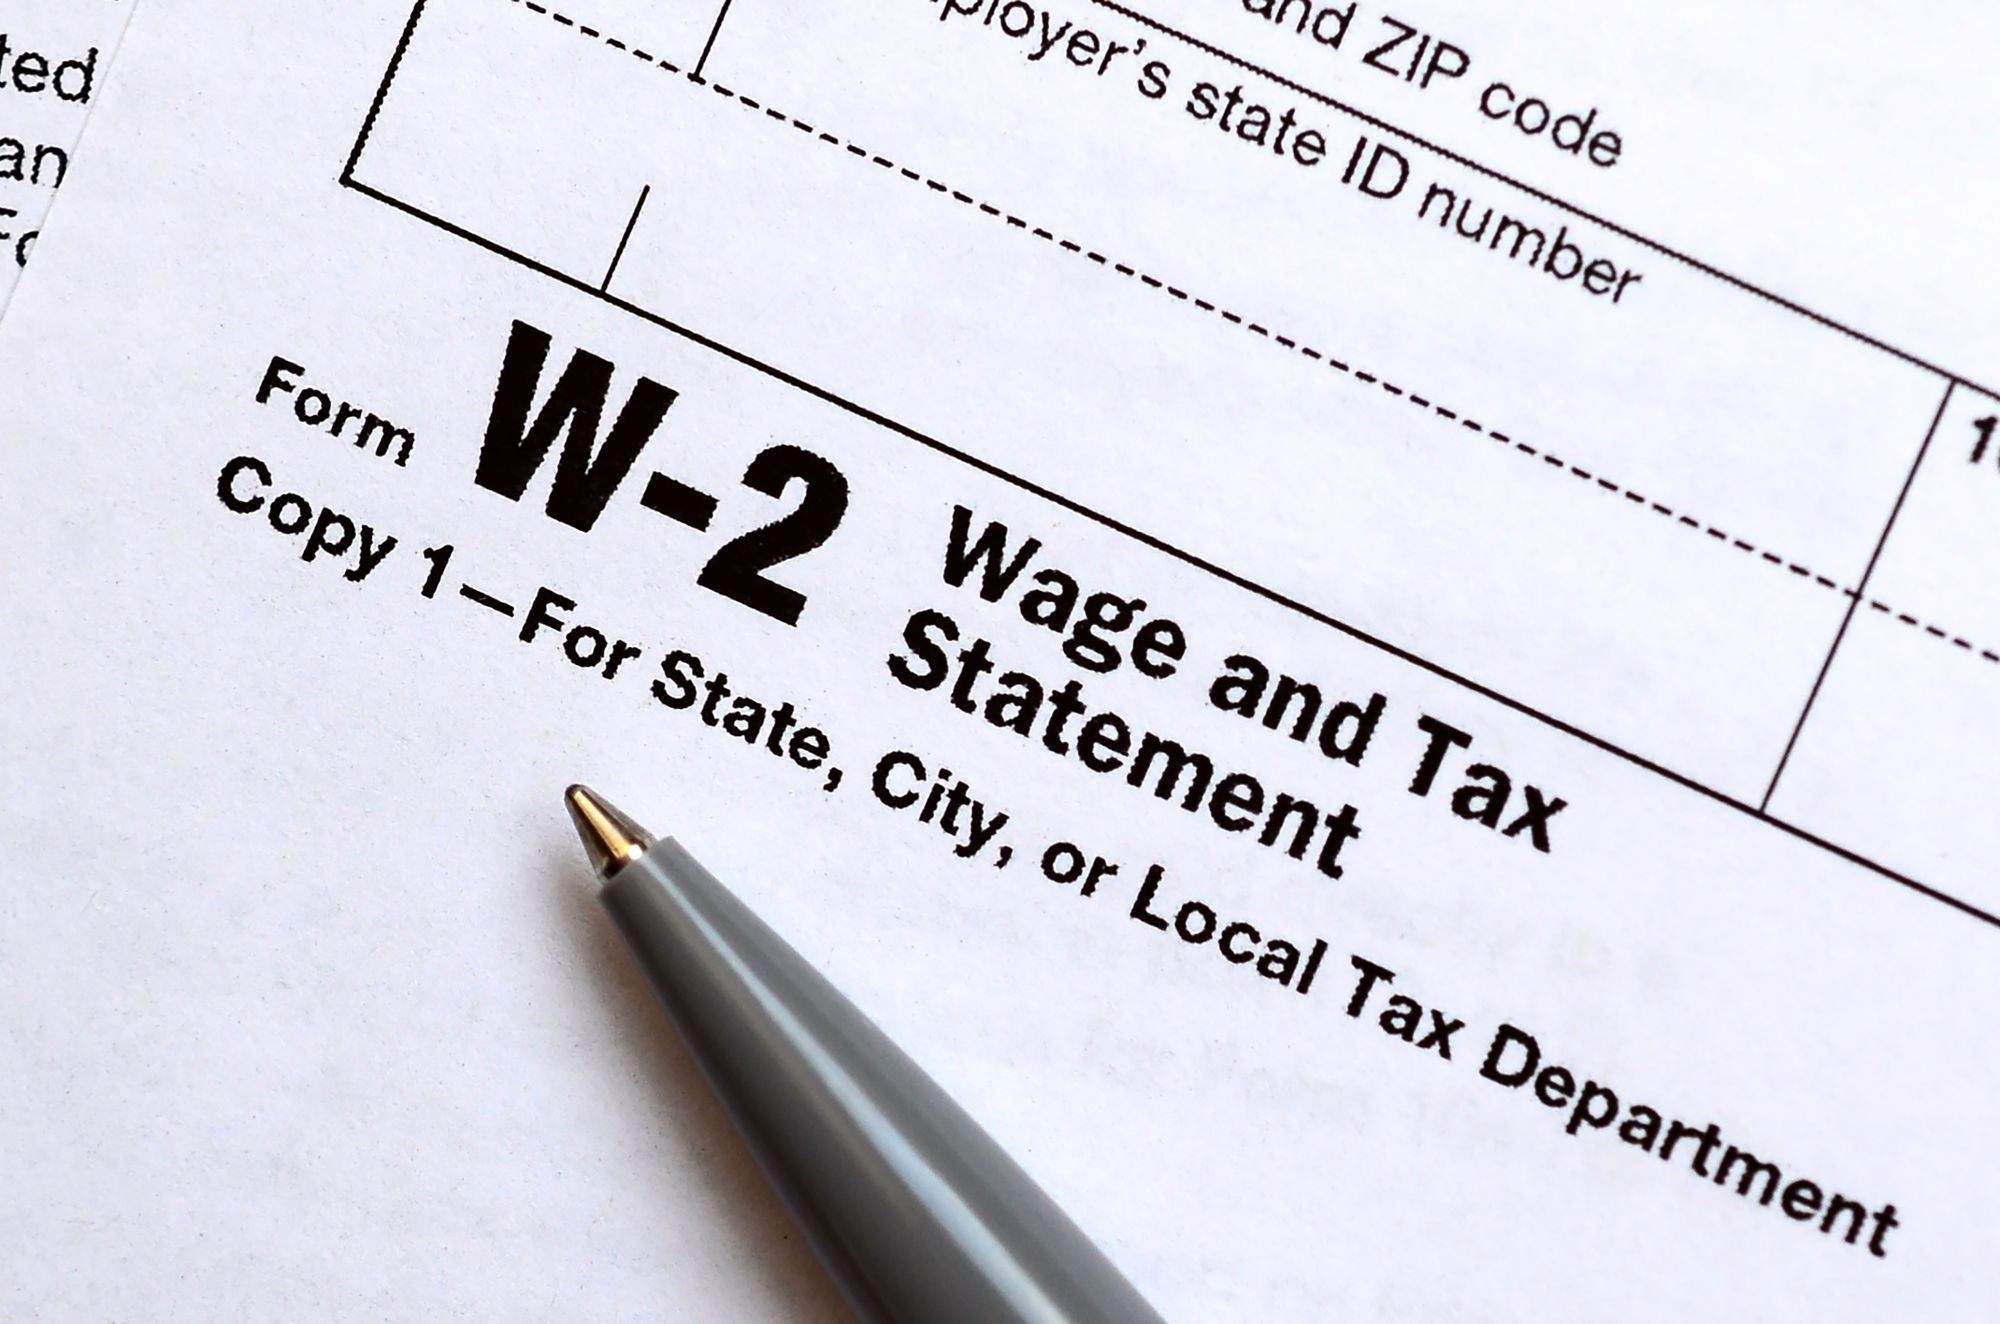 At Least 2 Years of W-2 Forms